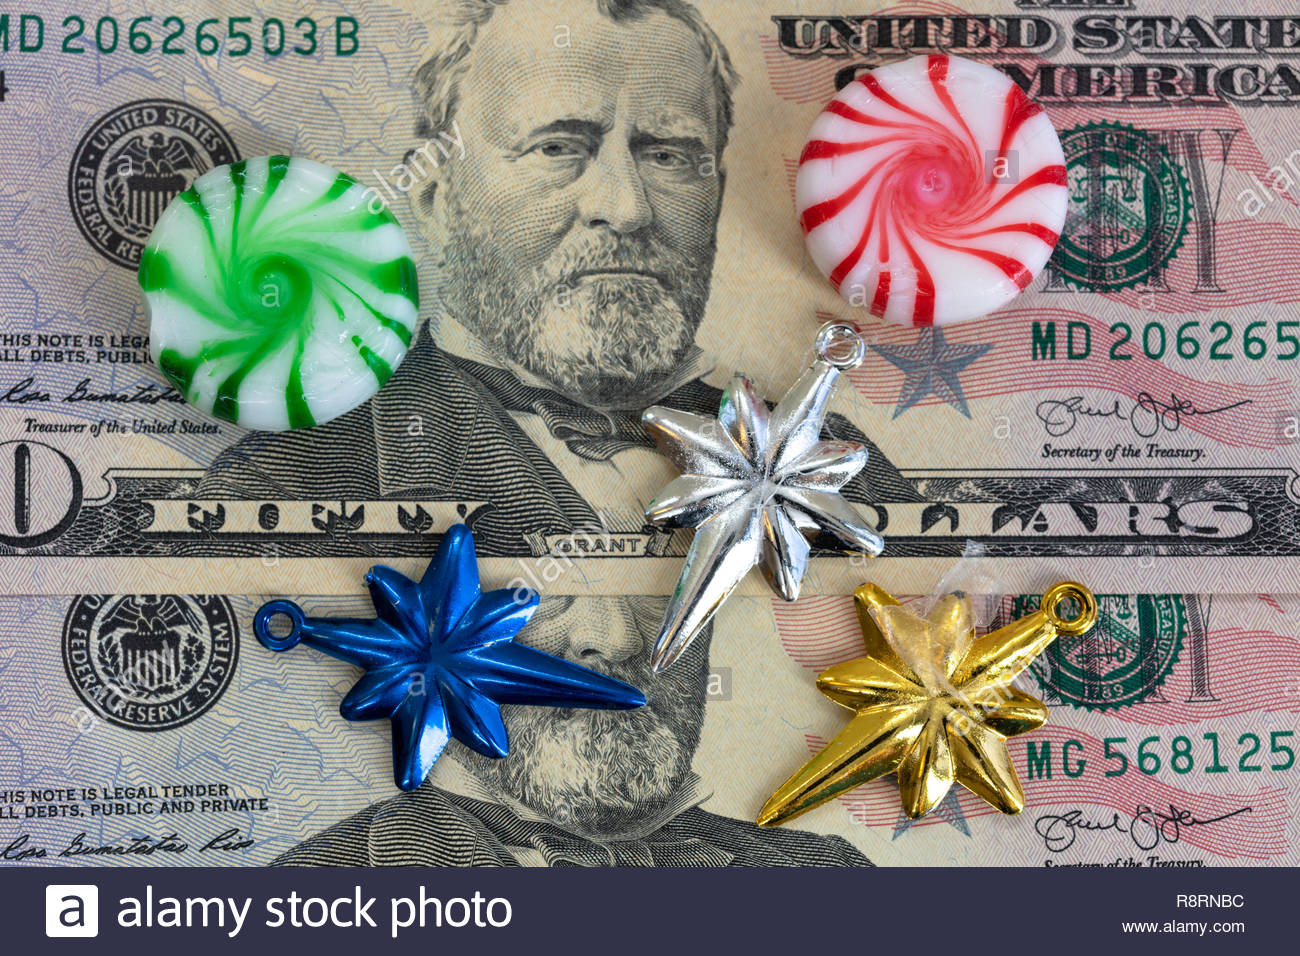 Christmas food and decoration small objects over a background of USD 50 dollar bills. Conceptual image of the commercialization of Christmas - Stock Image